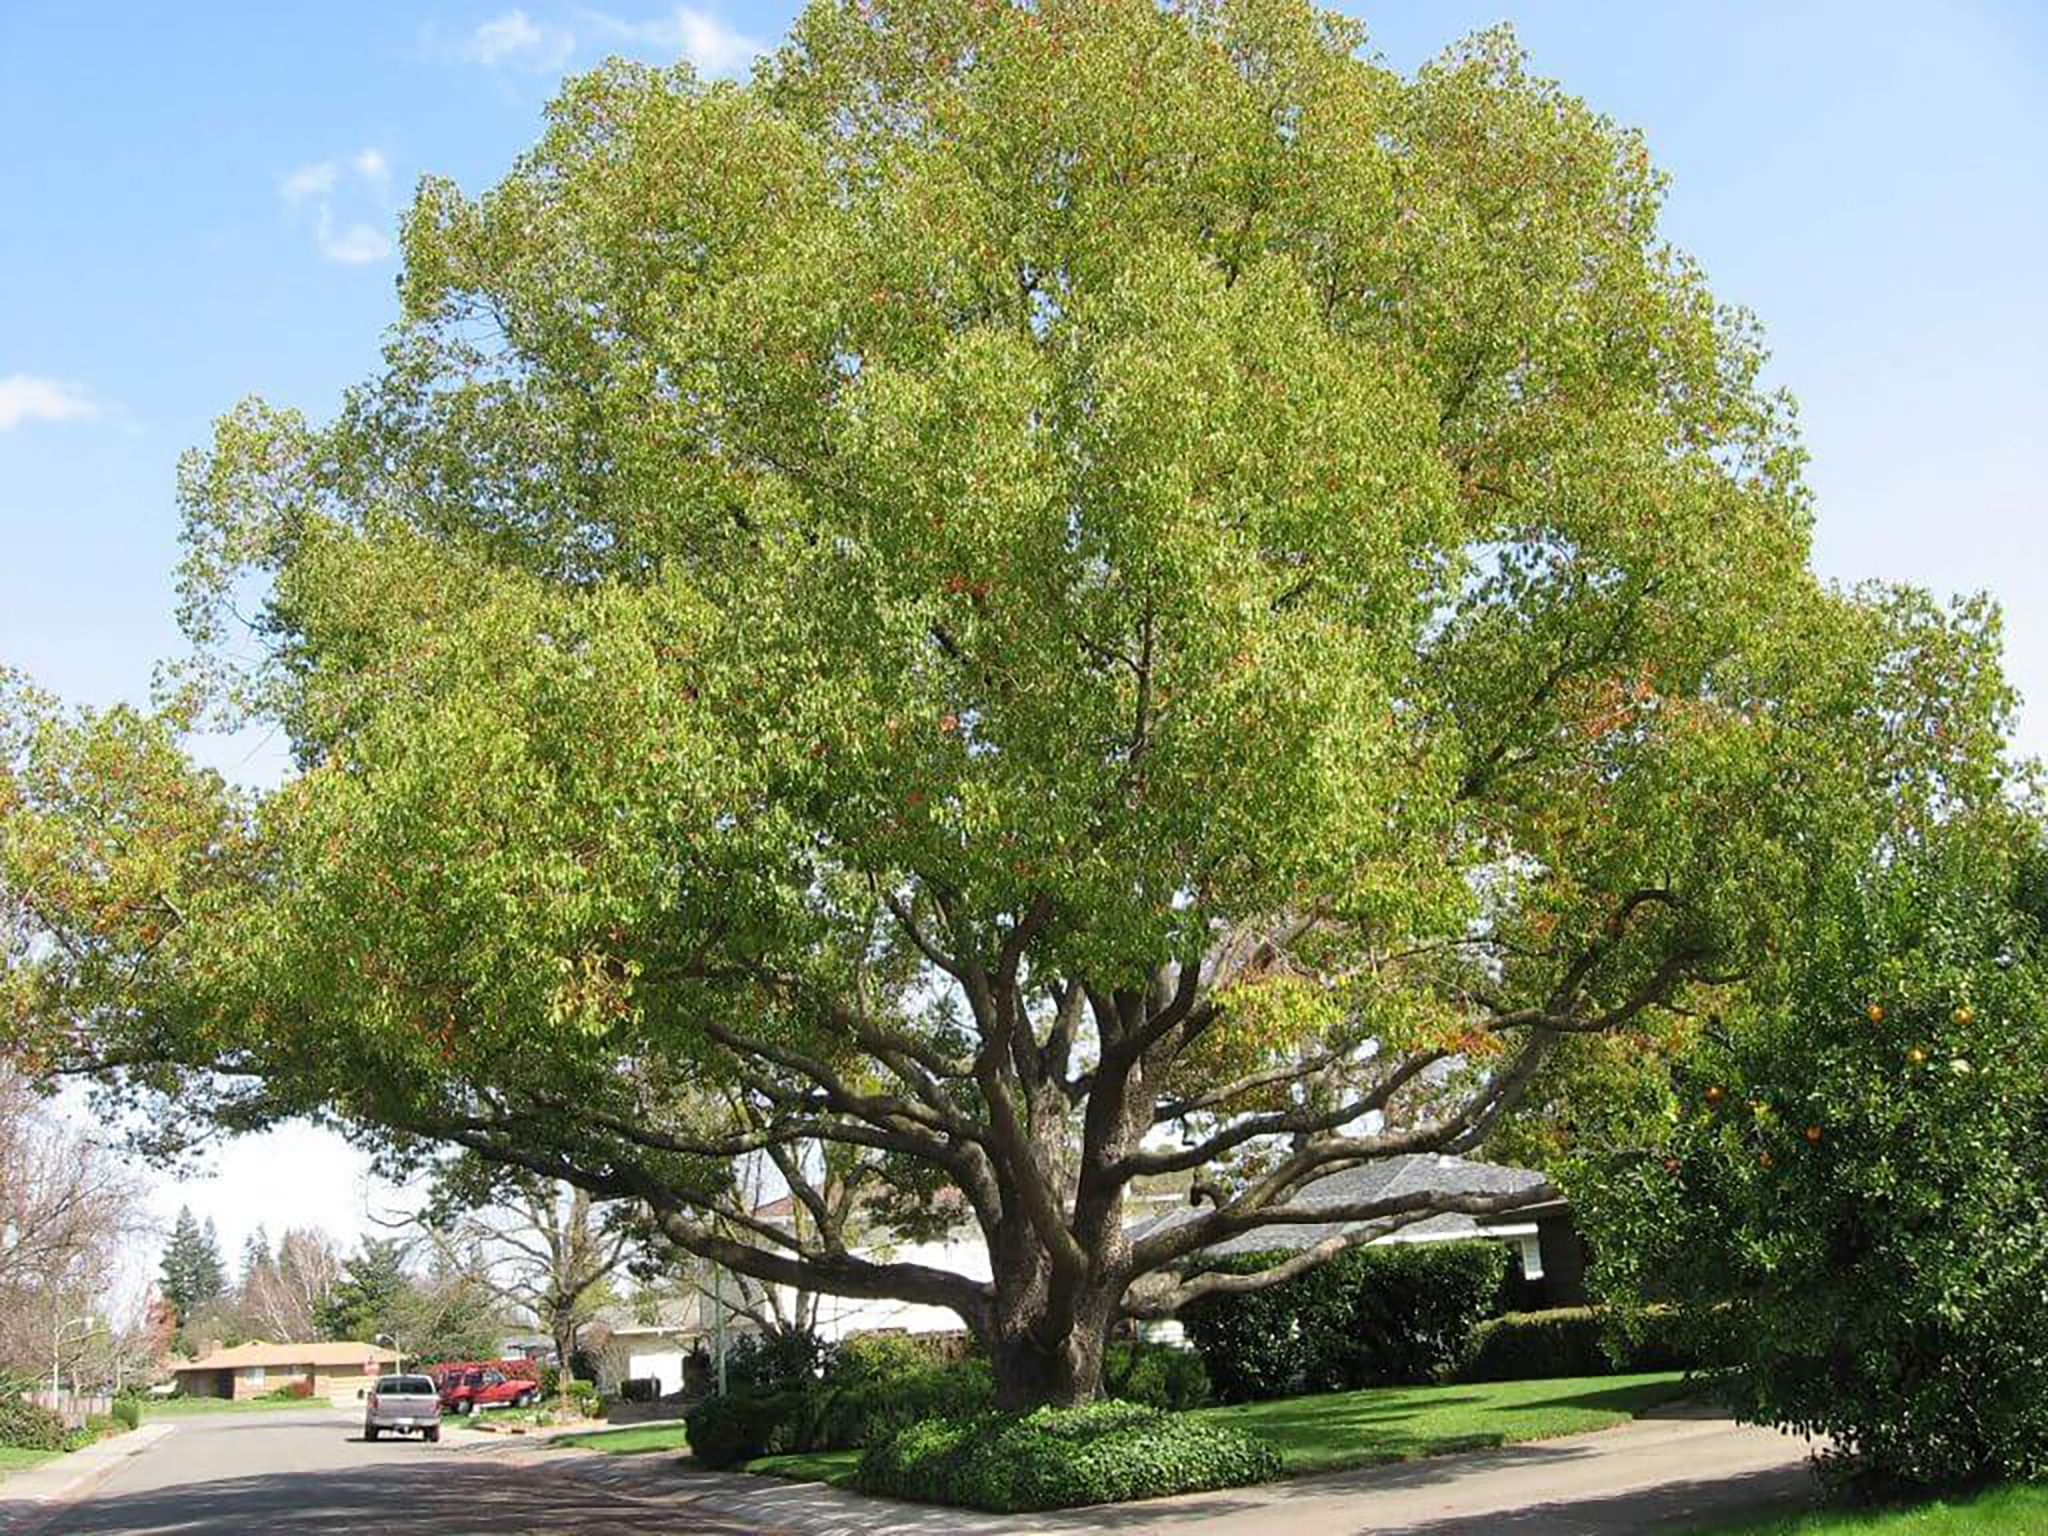 Camphor trees - should you plant one? 1 ahh, the magnificent and contentious camphor tree. These trees stay green year long, provide plenty of shade, emit a fragrant minty smell and are just one of those trees you want to go up and give a good hug. Ask another tree lover, however, and they might say the camphor is one tree to steer clear of.